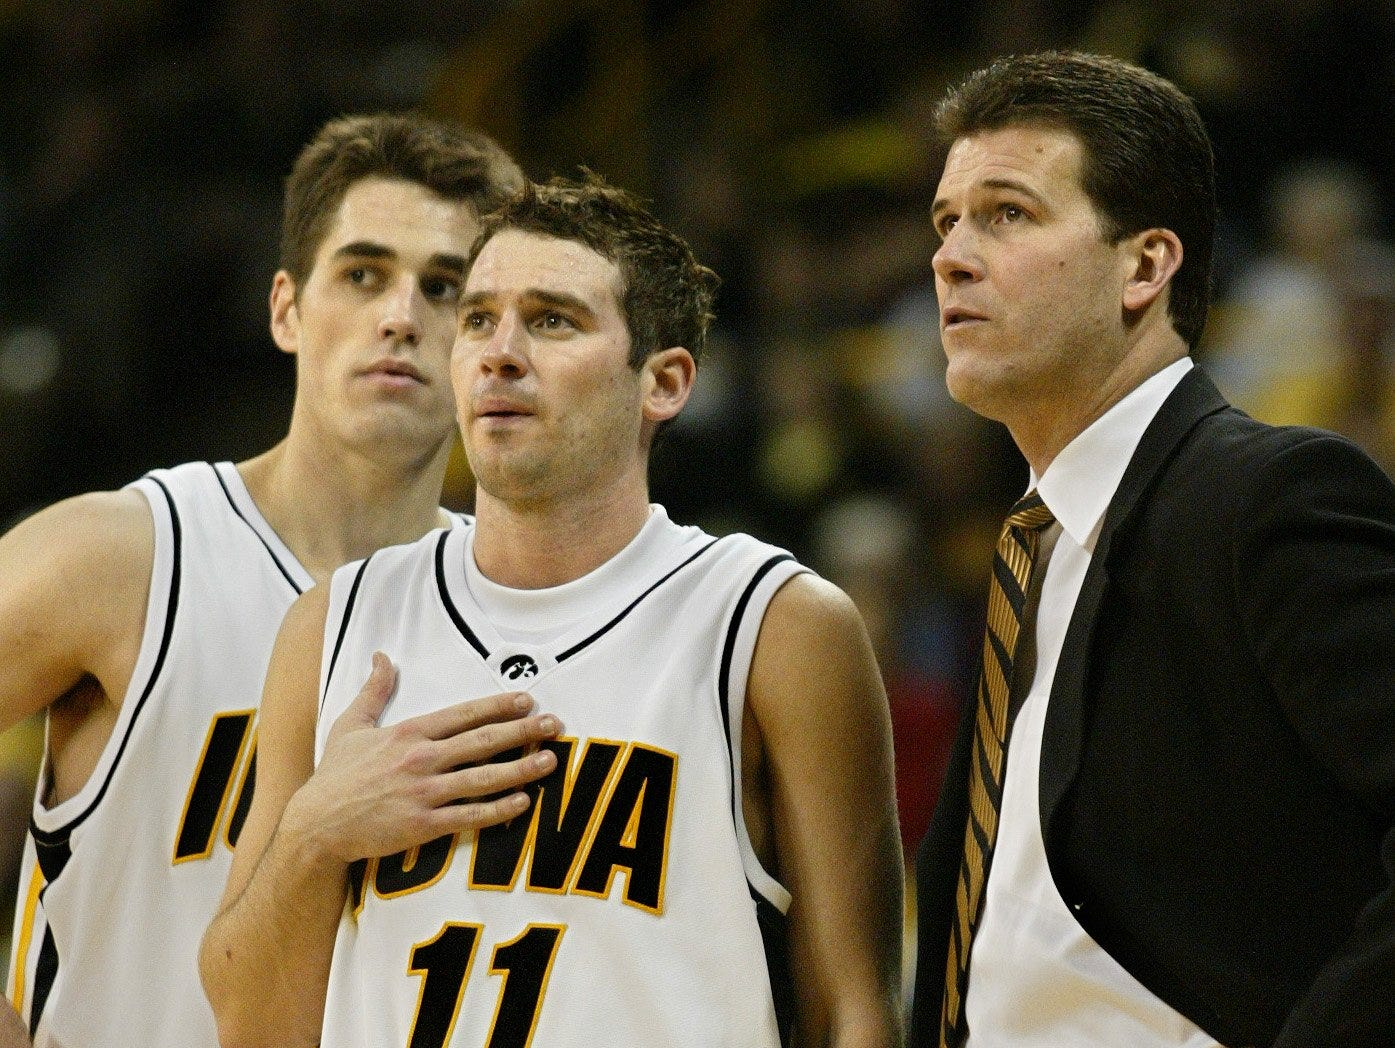 From 2003: Iowa's Brody Boyd (11) stands with Jeff Horner and coach Steve Alford during game against Purdue.